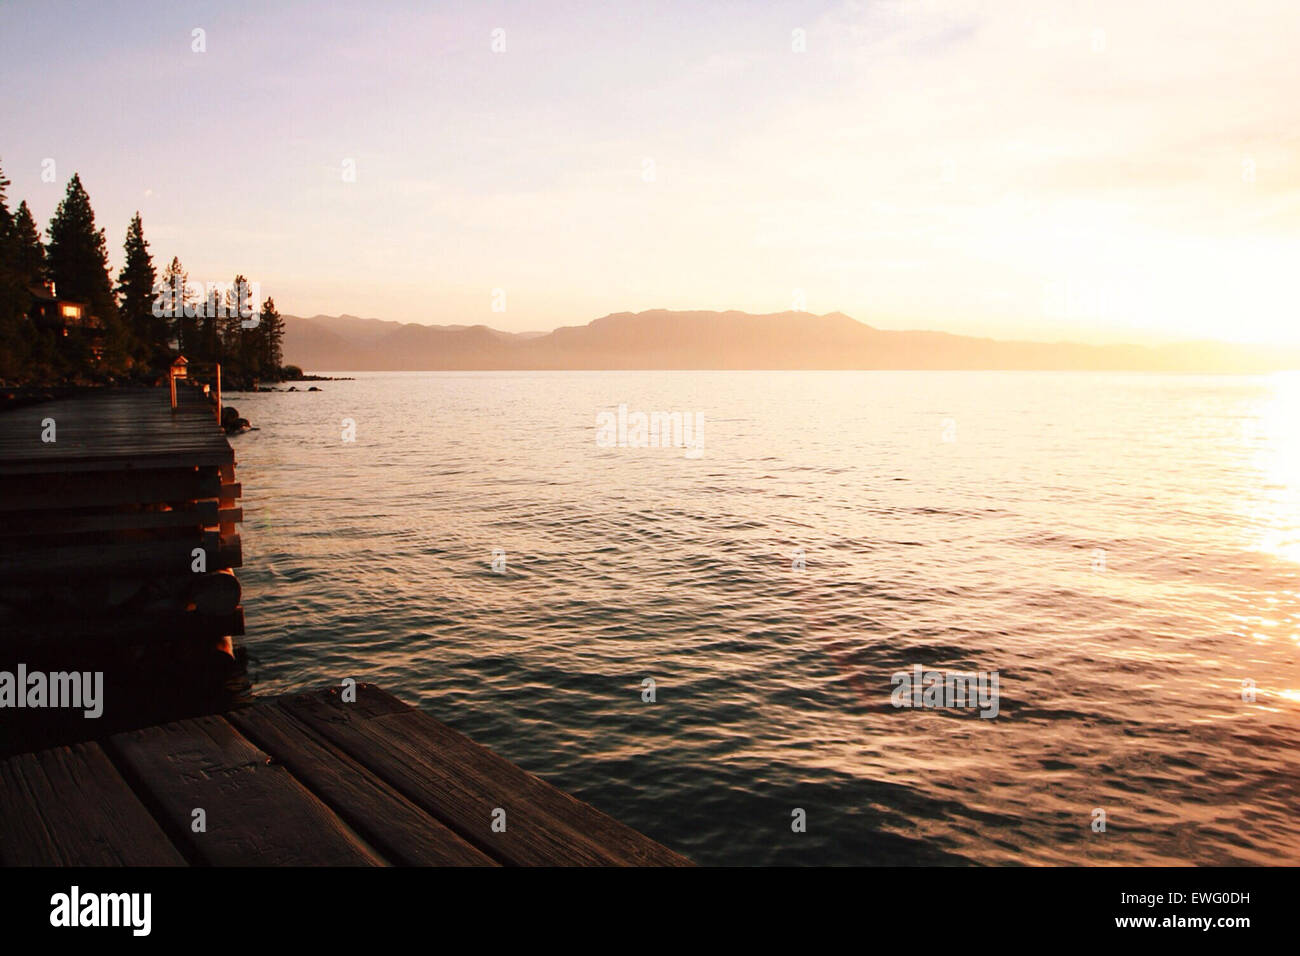 Wooden Deck Overlooking a Lake - Stock Image